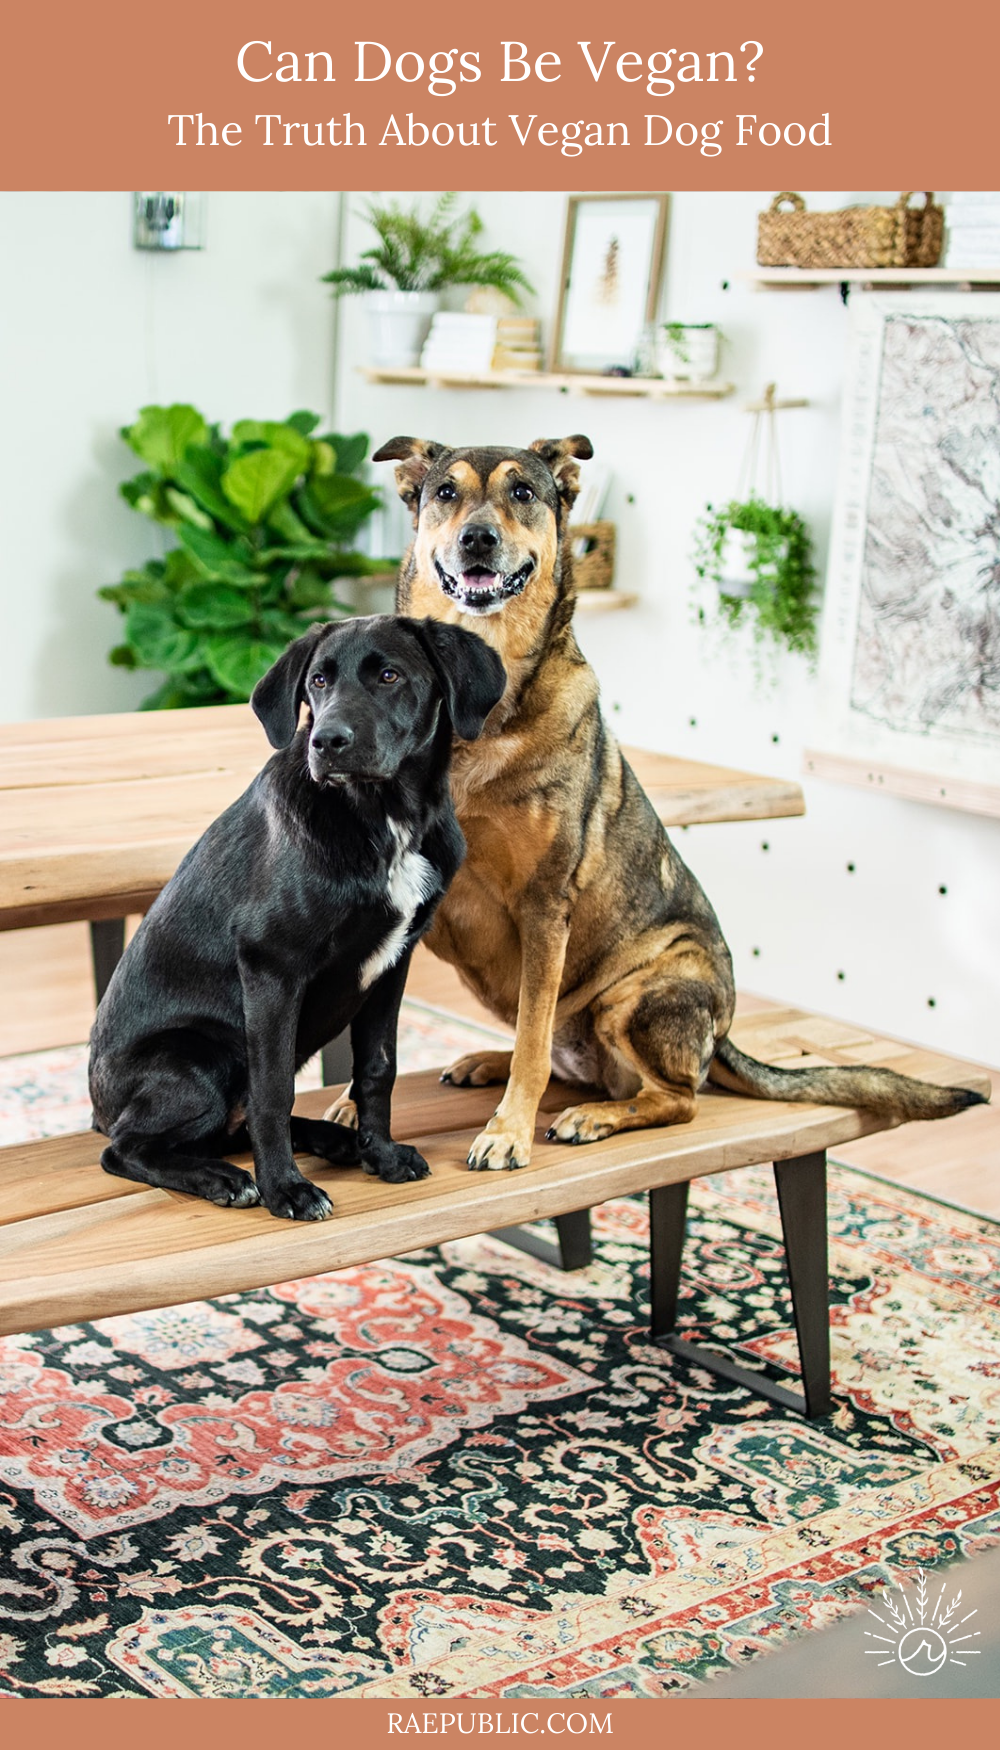 Can dogs be vegan? This blog post covers everything related to dog nutrition and if they can actually thrive on a plant-based diet. Want to learn the truth about vegan dog food? Read on.